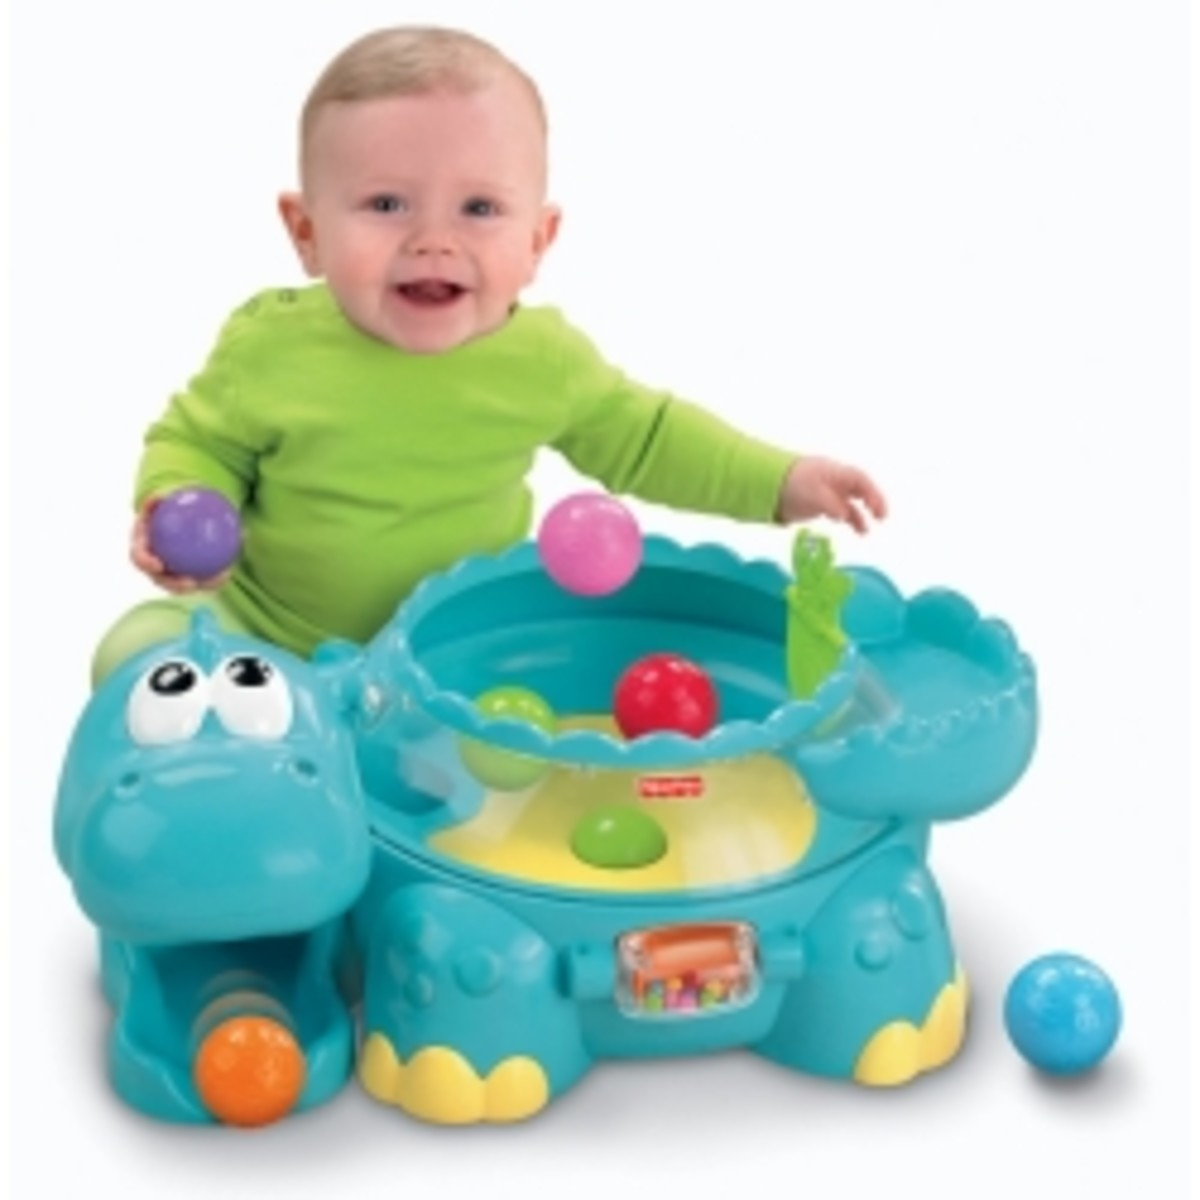 Fisher Price Poppity Pop Musical Dino: Best Toy for Babies and Toddlers